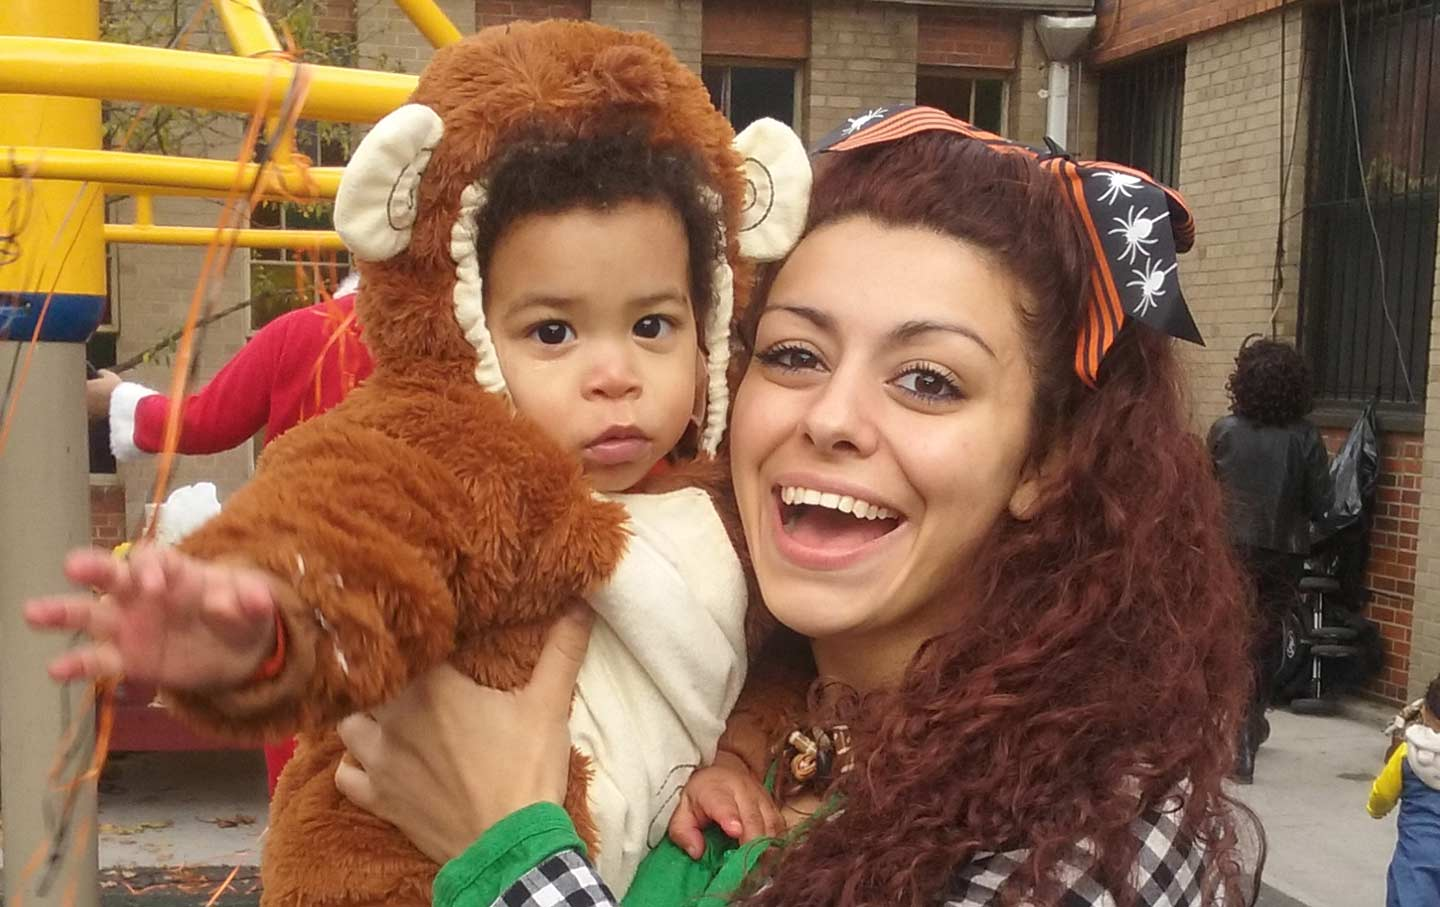 stephanie reis and her son celebrating halloween october 31 2015 victoria law